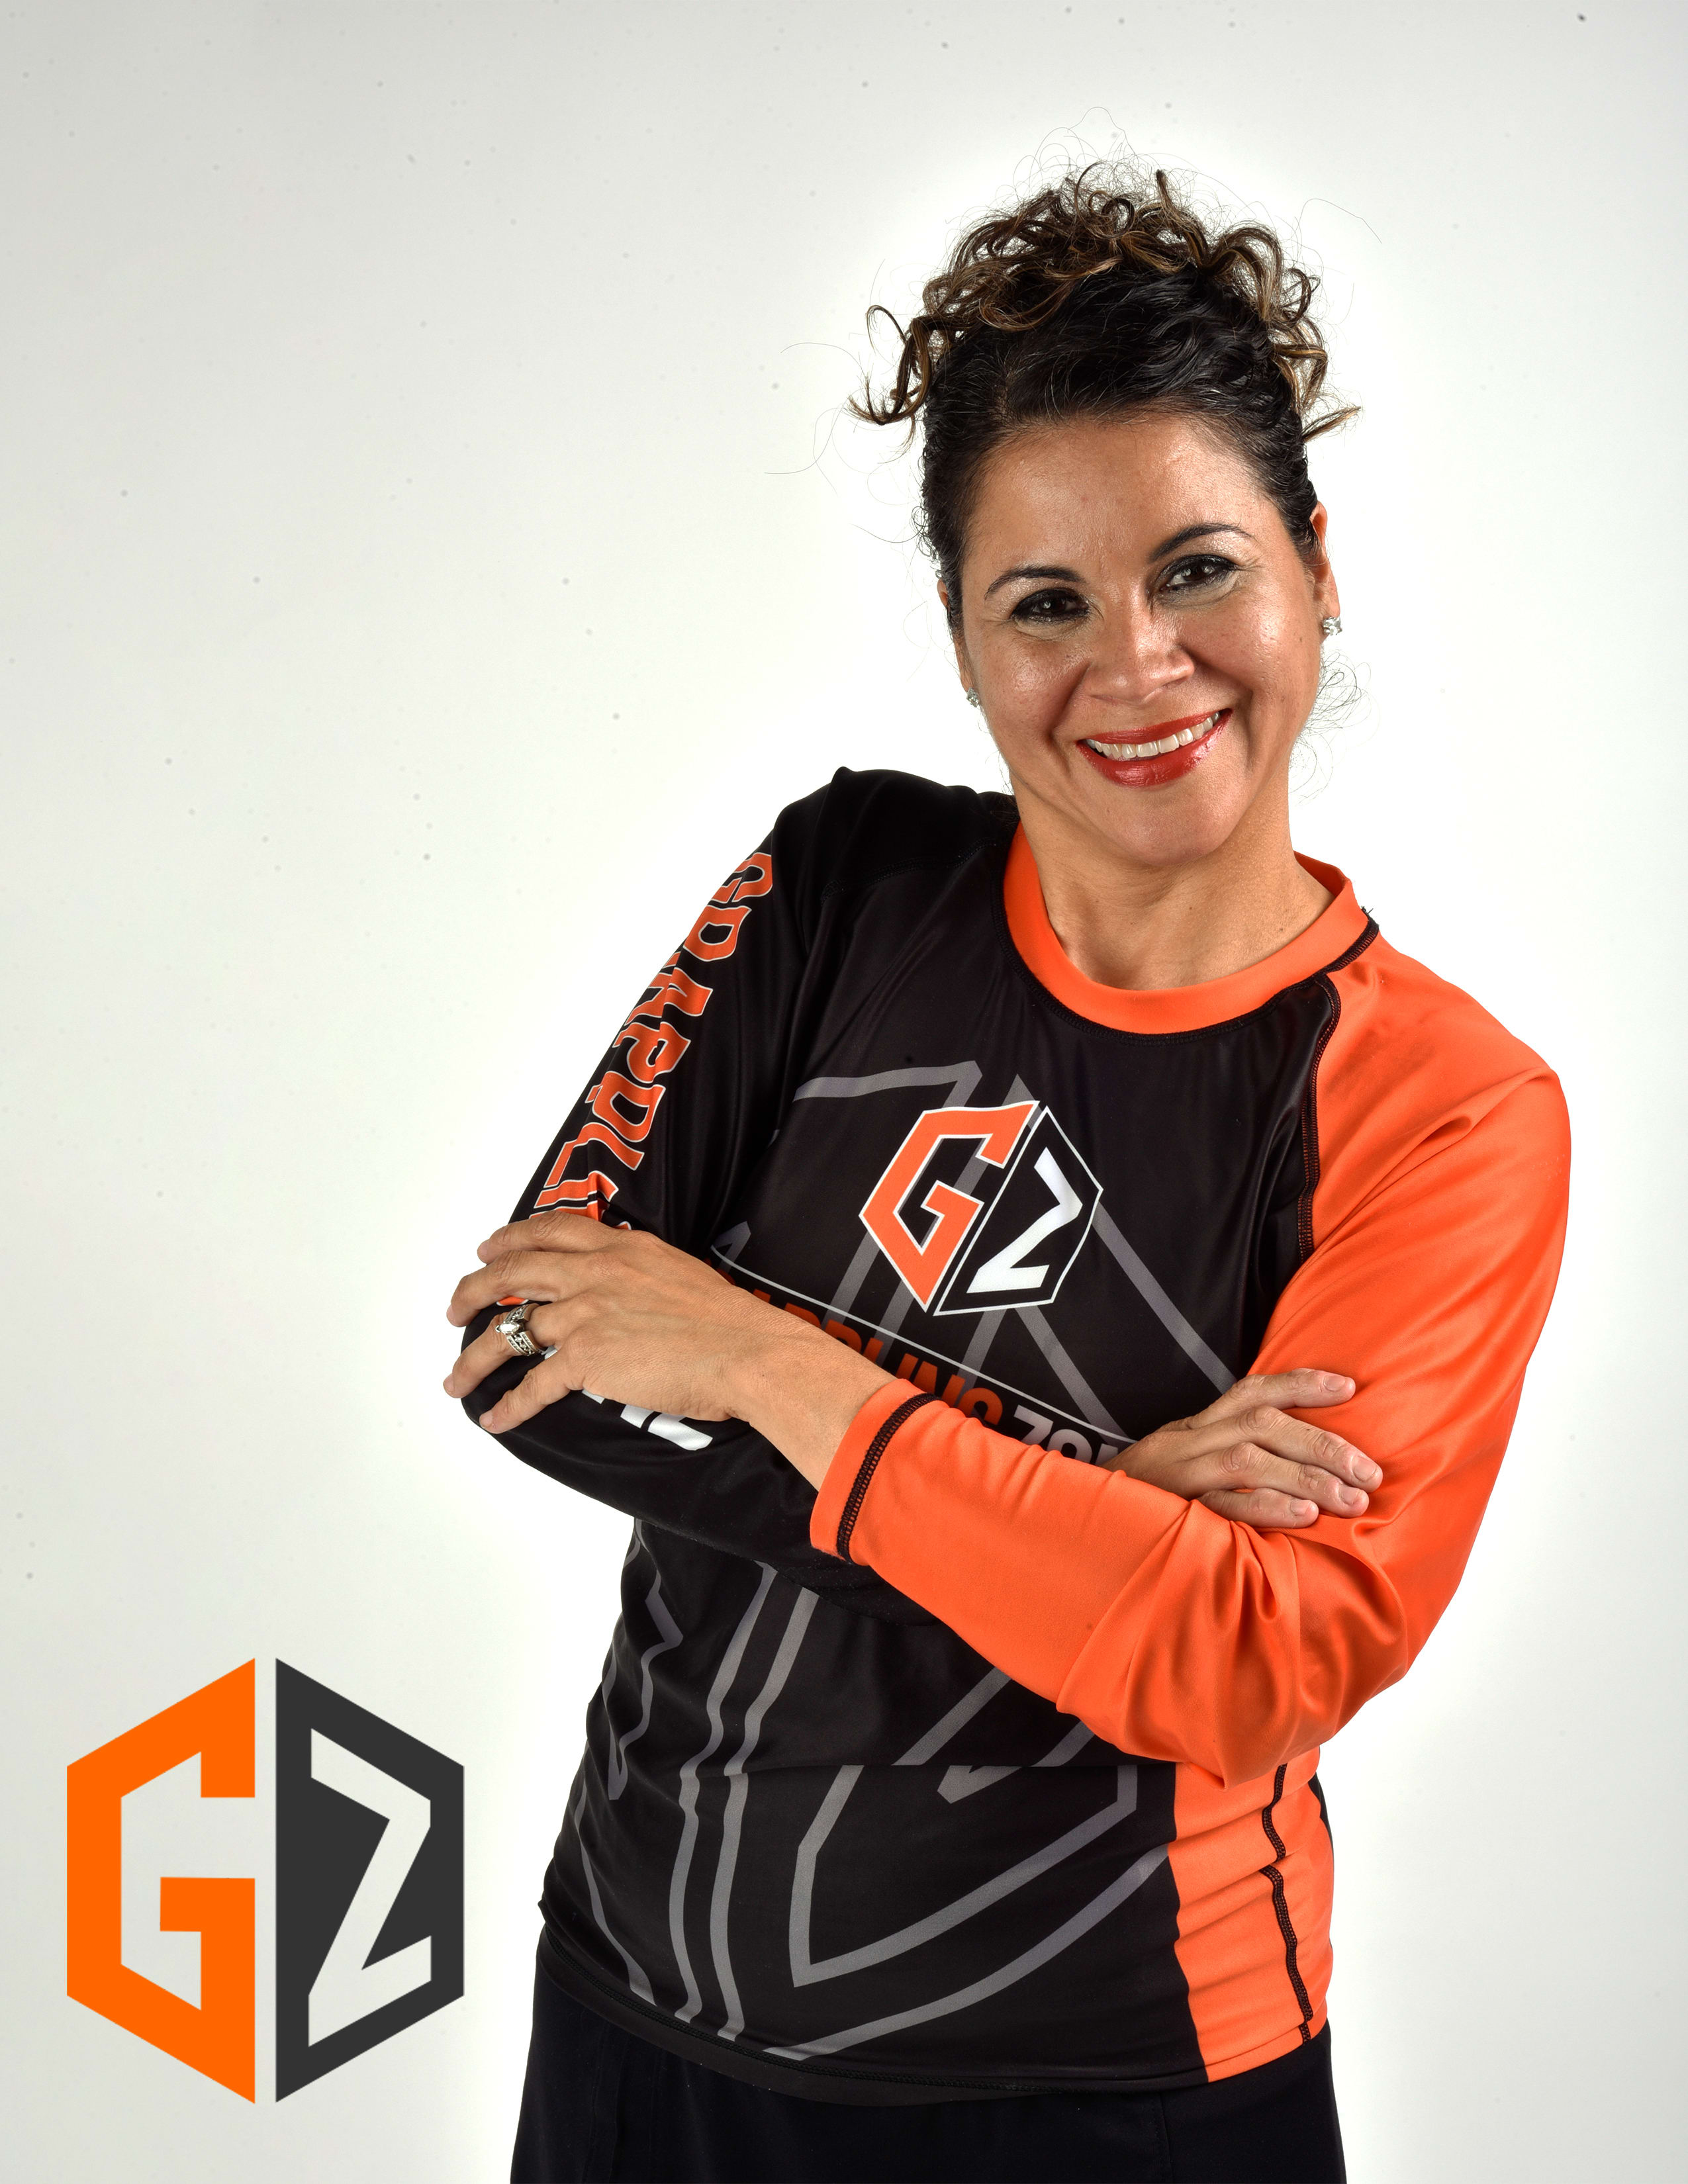 Terri Wadley  in Southeast Houston - Grappling Zone